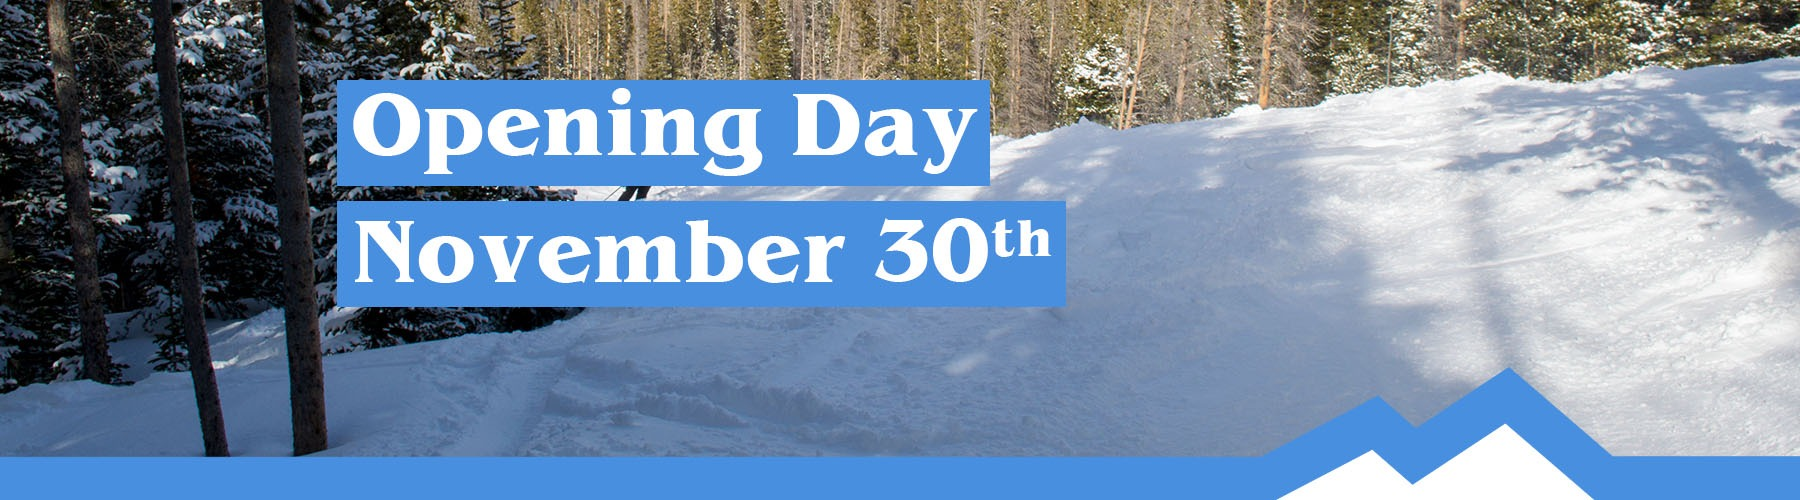 Snowy Range Ski Area Opening Day November 30, 2018